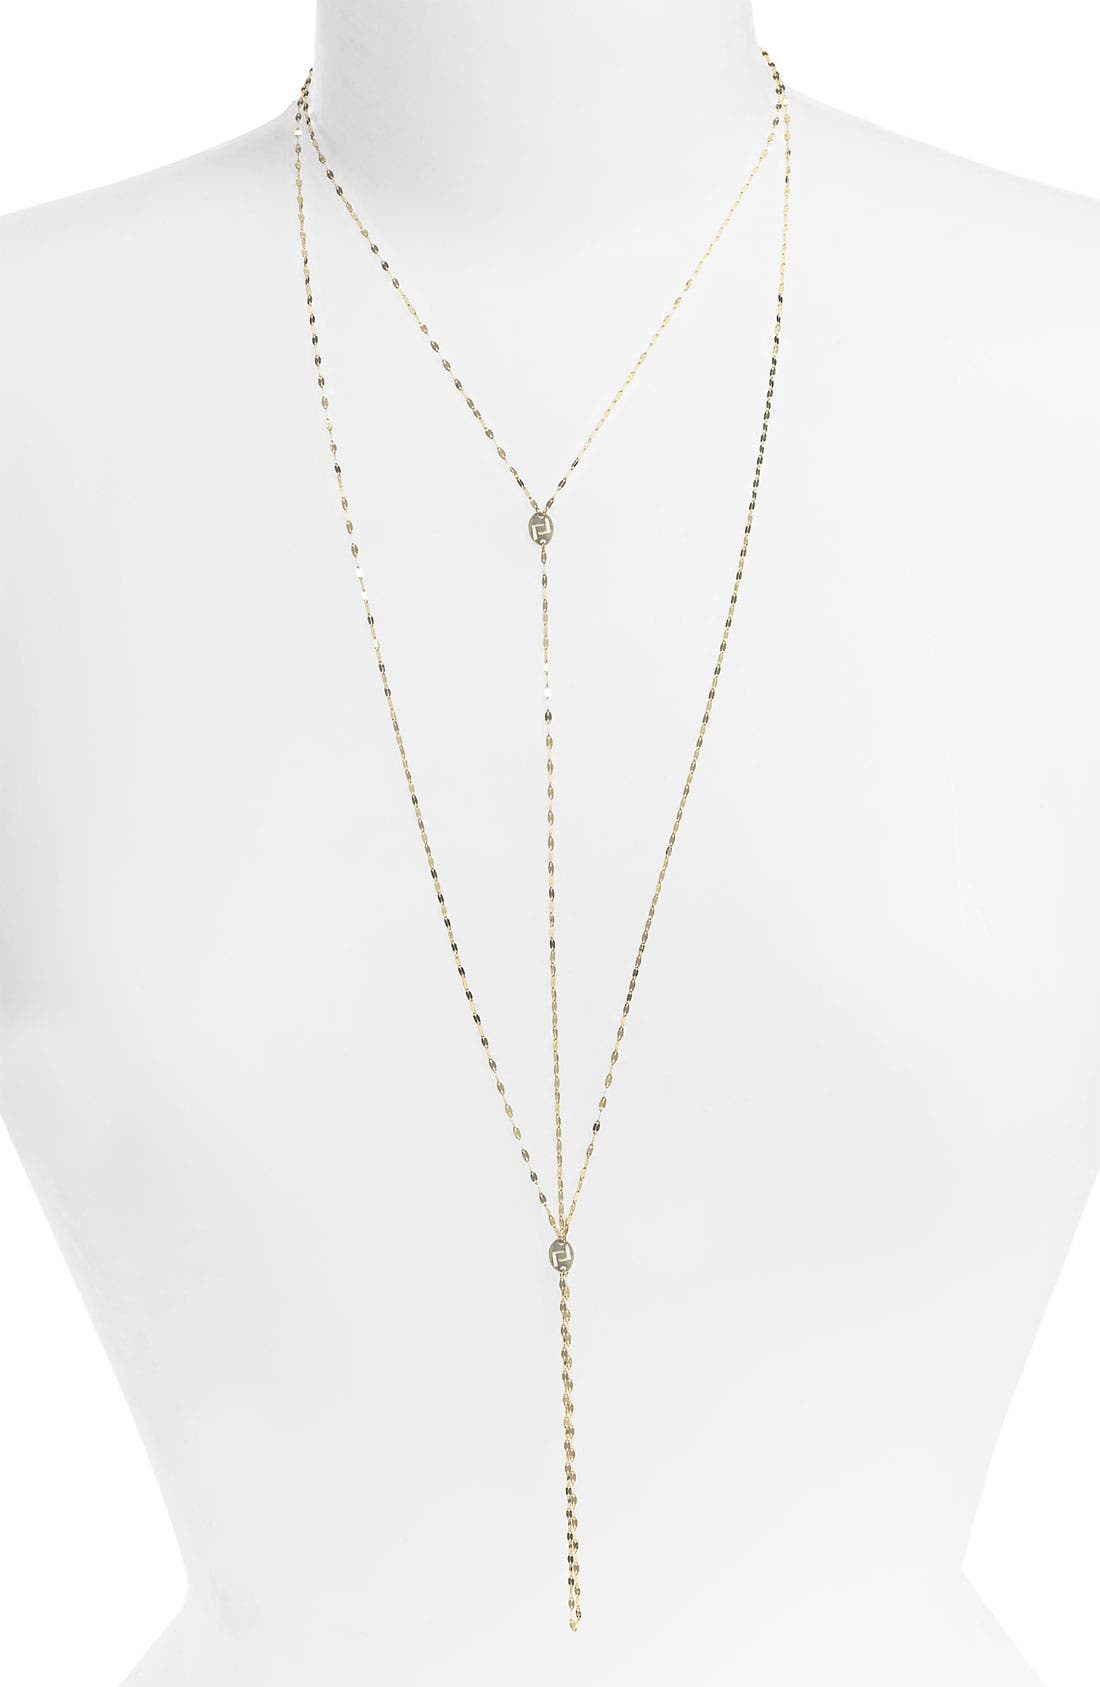 Alternate Image 1 Selected - Lana Jewelry 'Luck 'n' Love' Lariat Necklace